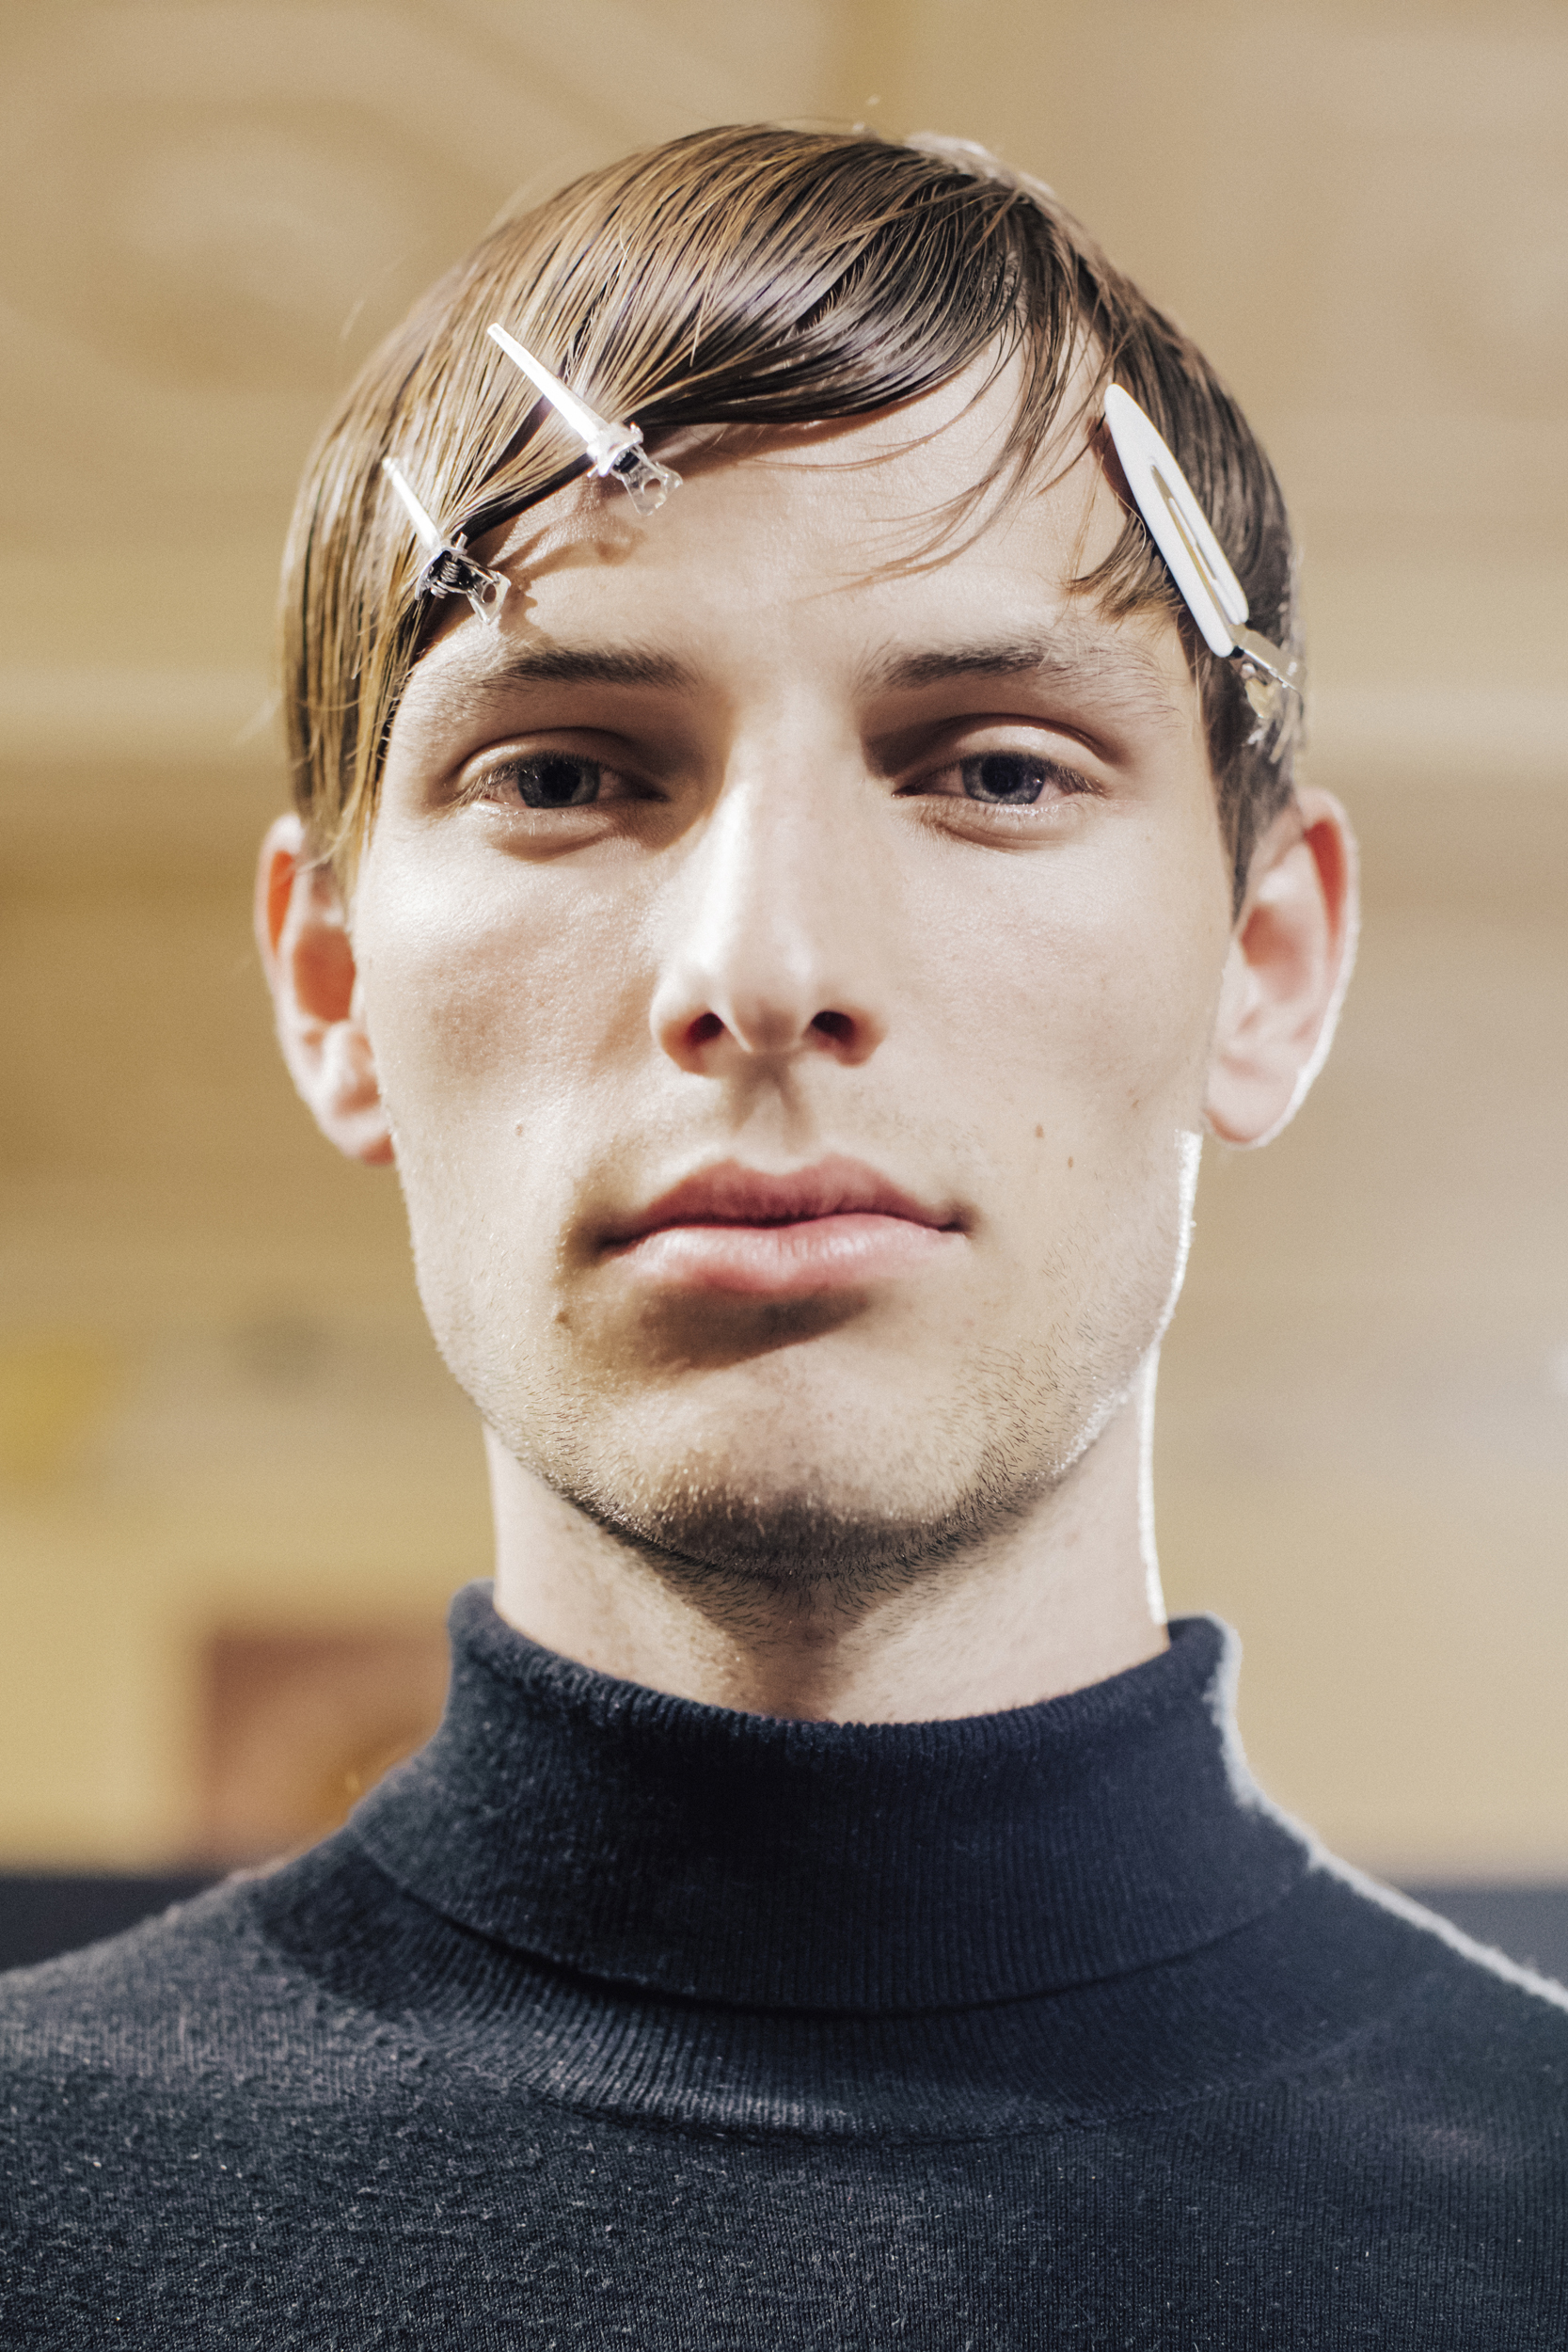 calcaterra_Giorgio_Leone_backstage_milano_fashion_week_01.jpg